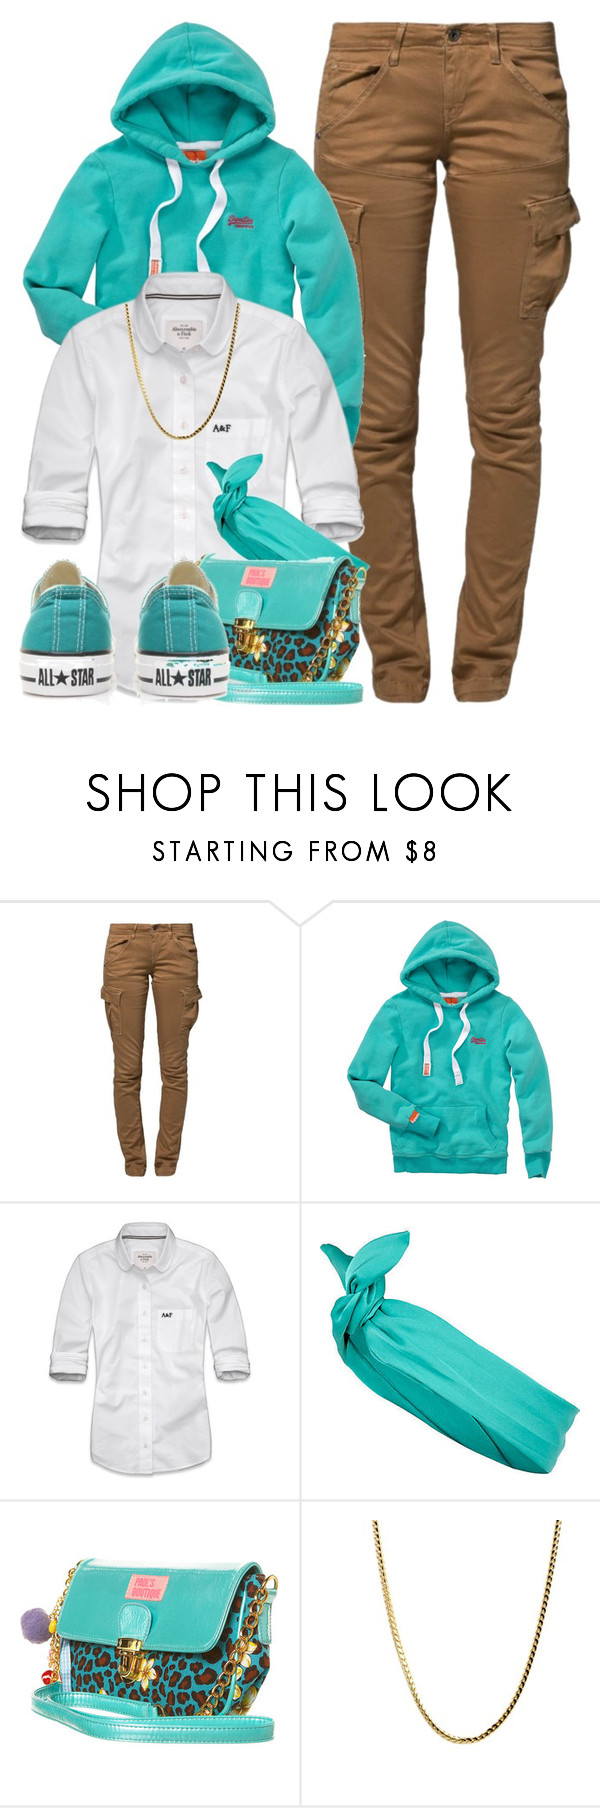 """[This a thousand dollar pair of shoes and U.O.E.N.O it]"" by feeltheharmony ❤ liked on Polyvore featuring G-Star Raw, Superdry, Abercrombie & Fitch, River Island, Paul's Boutique, Converse, women's clothing, women's fashion, women and female"